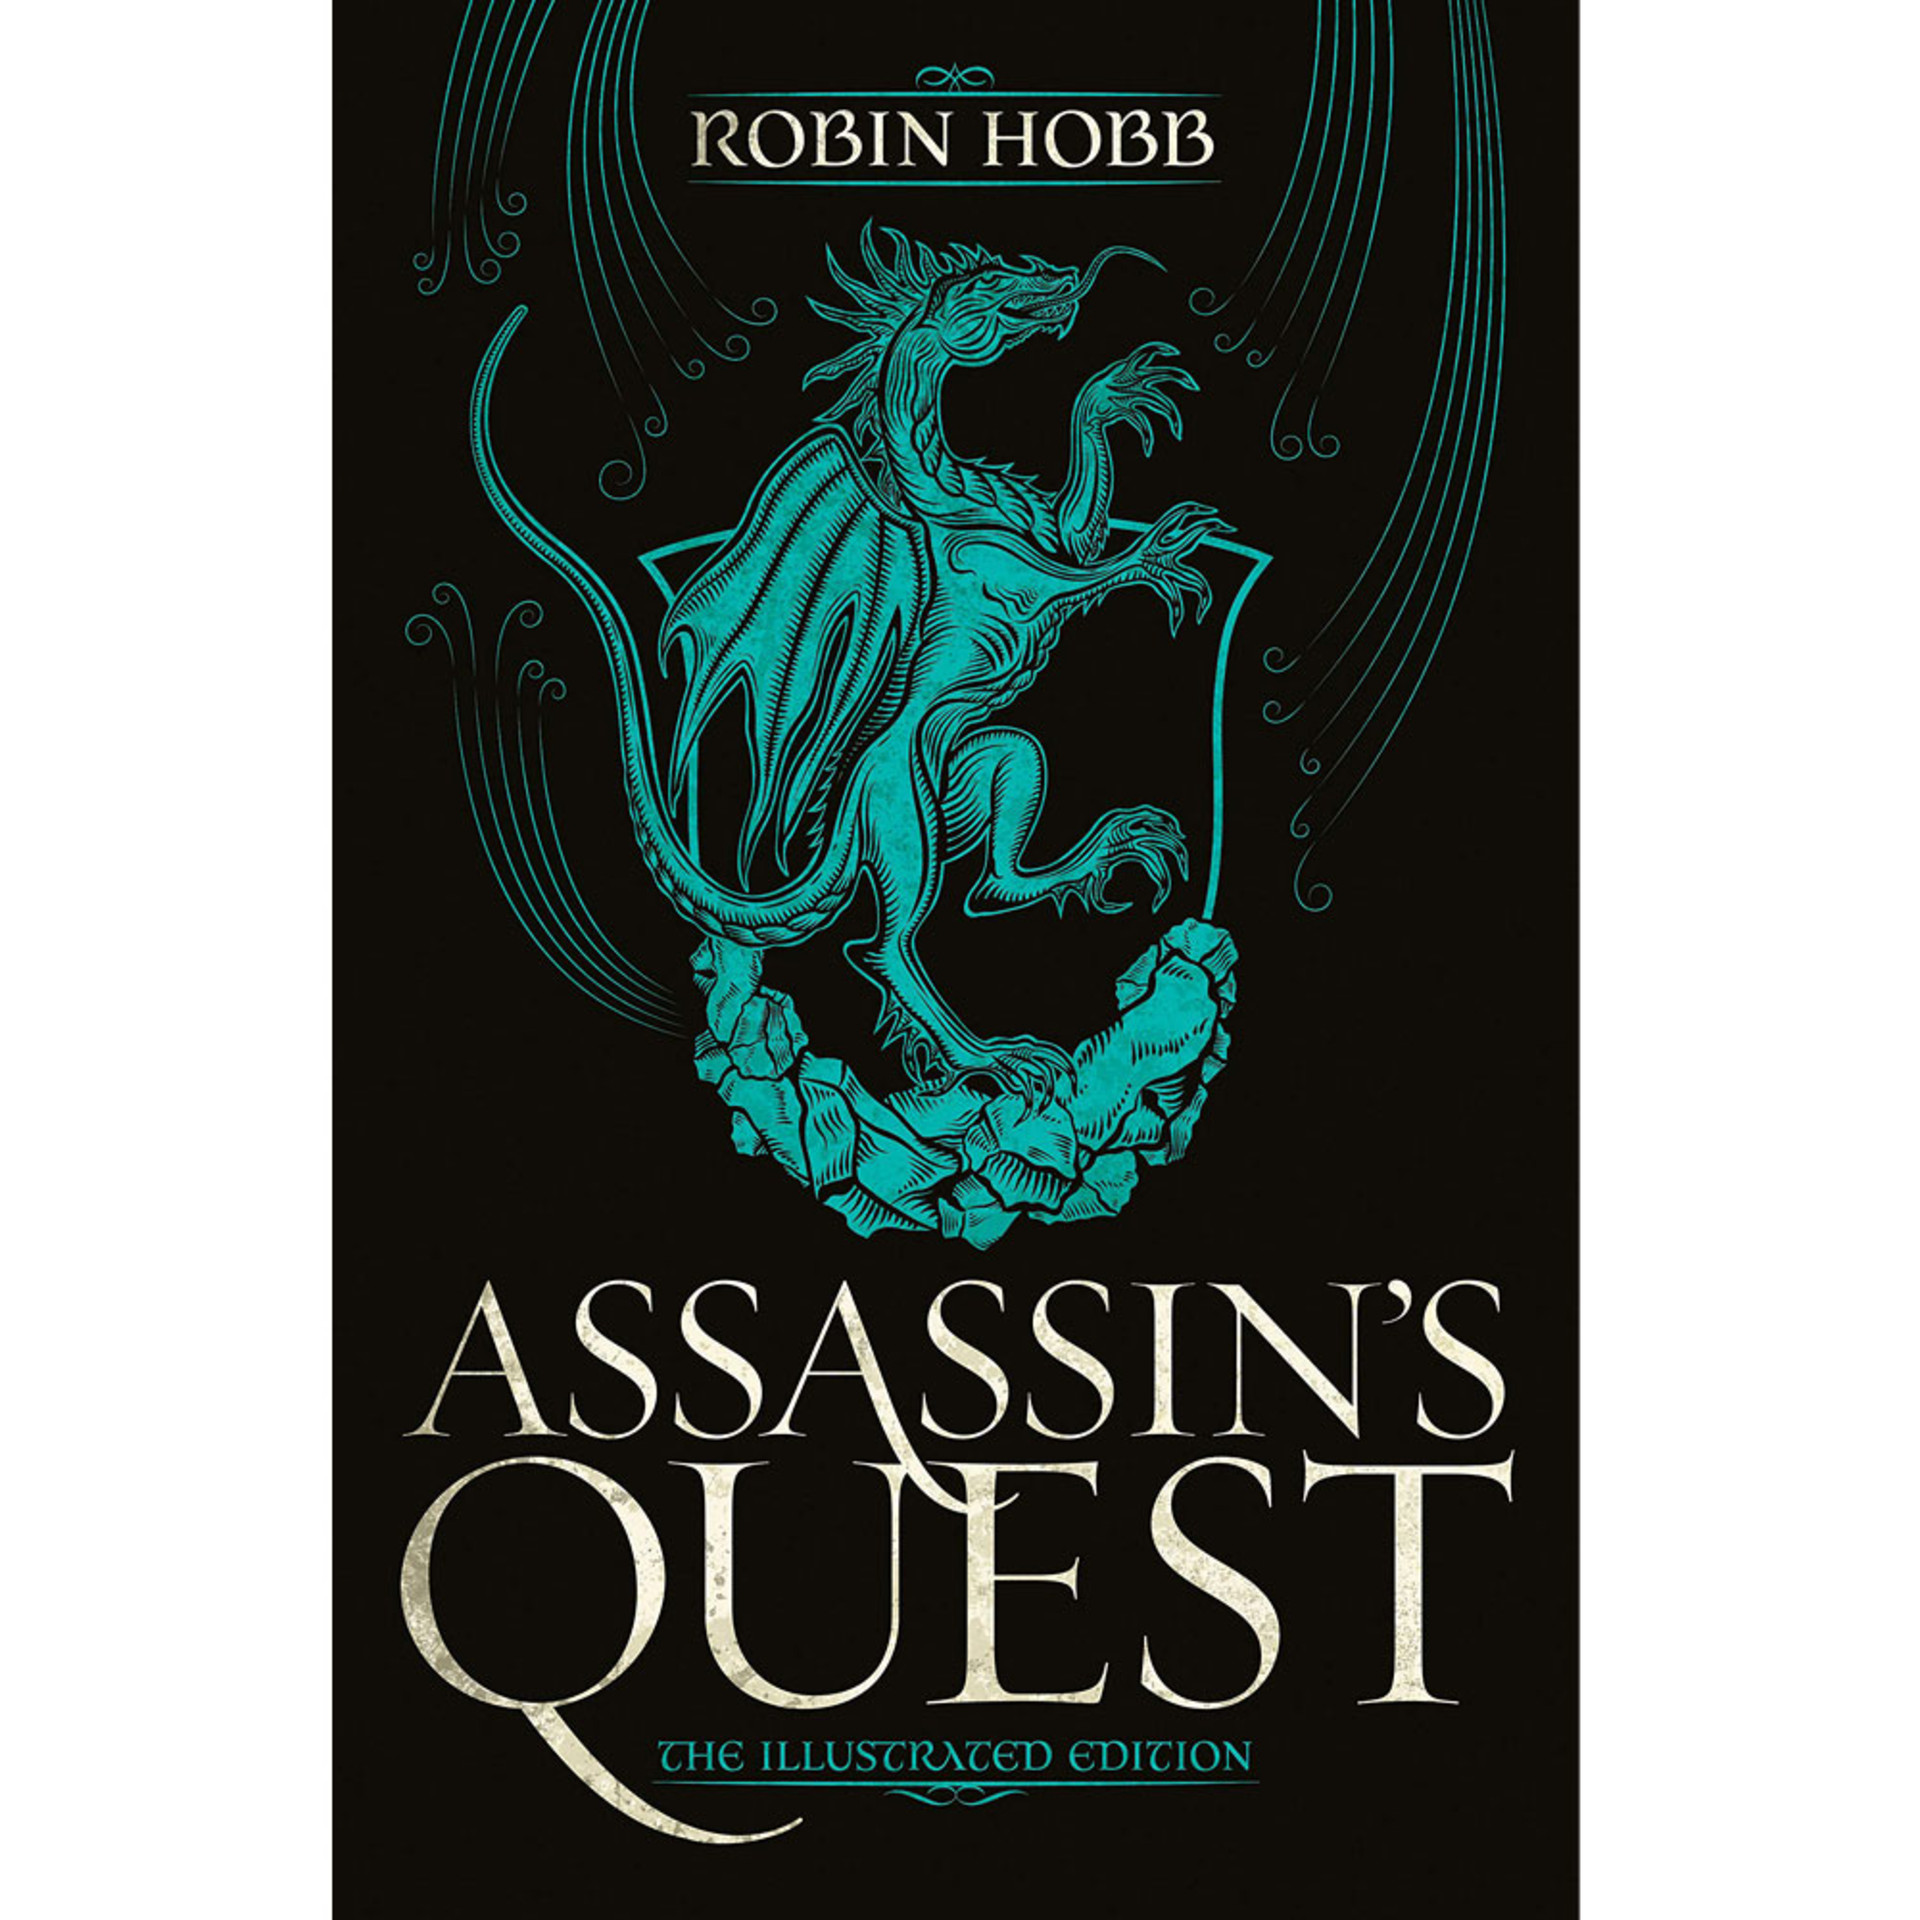 Assassin's Quest: The Illustrated Edition by Robin Hobb